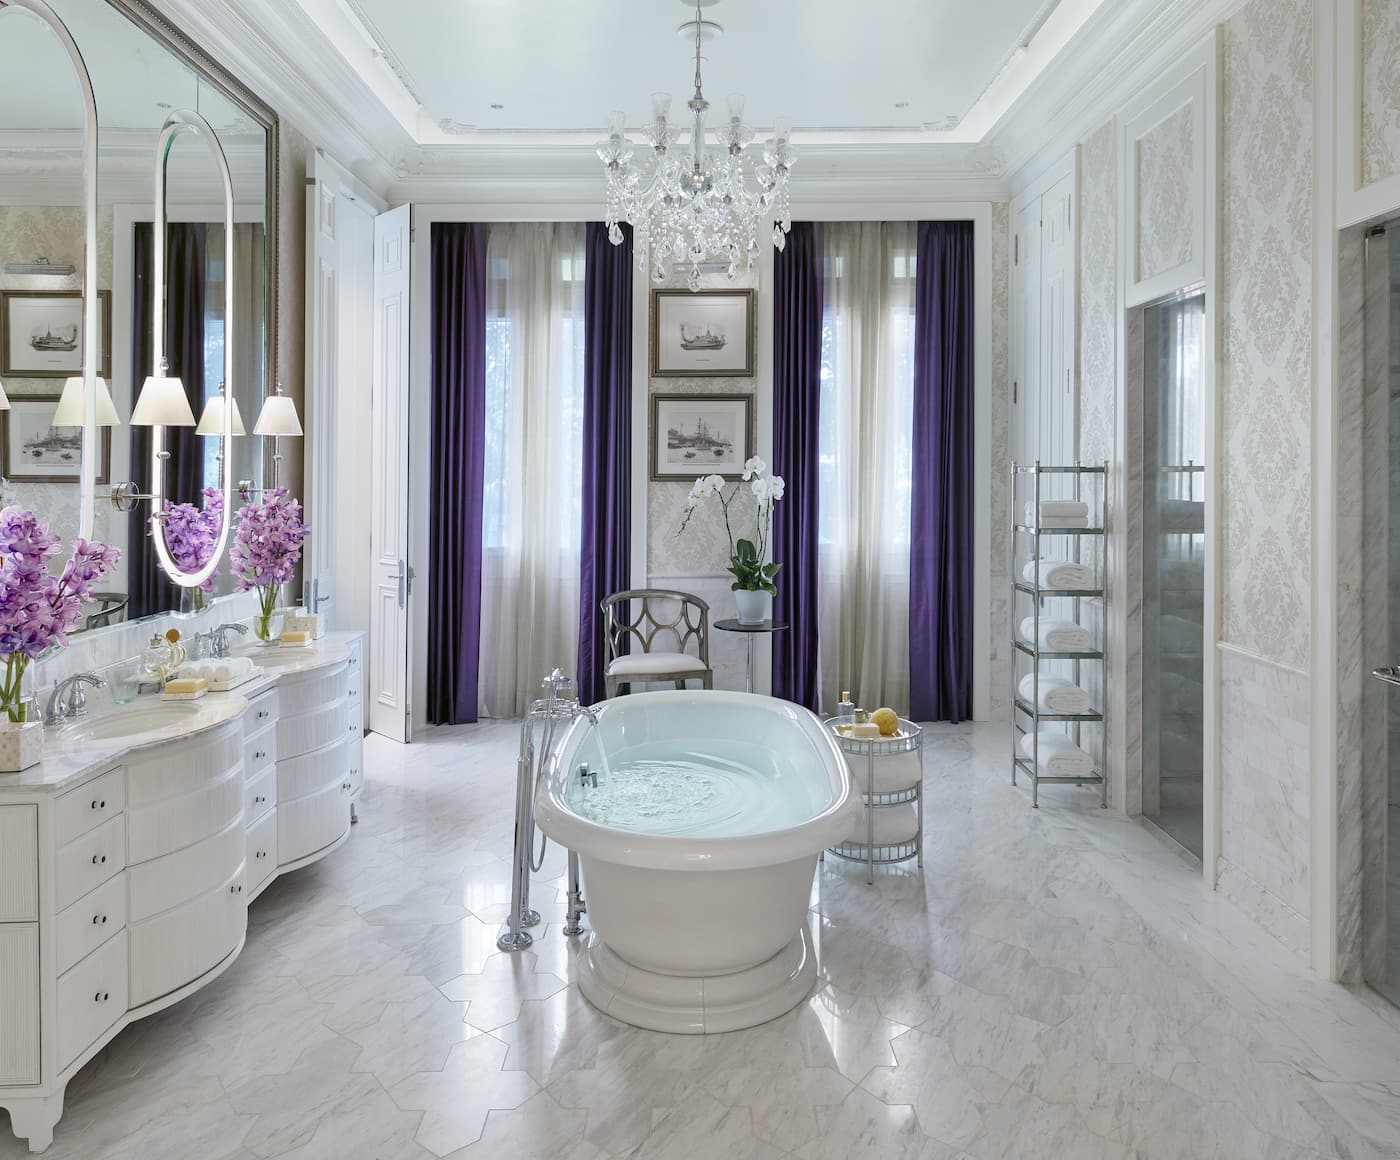 Contemporary Style Bathroom Design on kitchen designs, contemporary style art, contemporary style interior design, marble bathroom designs, color bathroom designs, bedroom bathroom designs, contemporary style bathroom faucets, contemporary style doors, contemporary style window treatments, contemporary style furniture, soffit bathroom designs, traditional bathroom designs, contemporary style dining room, contemporary style home decorating, white bathroom designs, contemporary style bedroom, teenagers room designs, contemporary style kitchens, feng shui bathroom designs, contemporary style bathroom lighting,